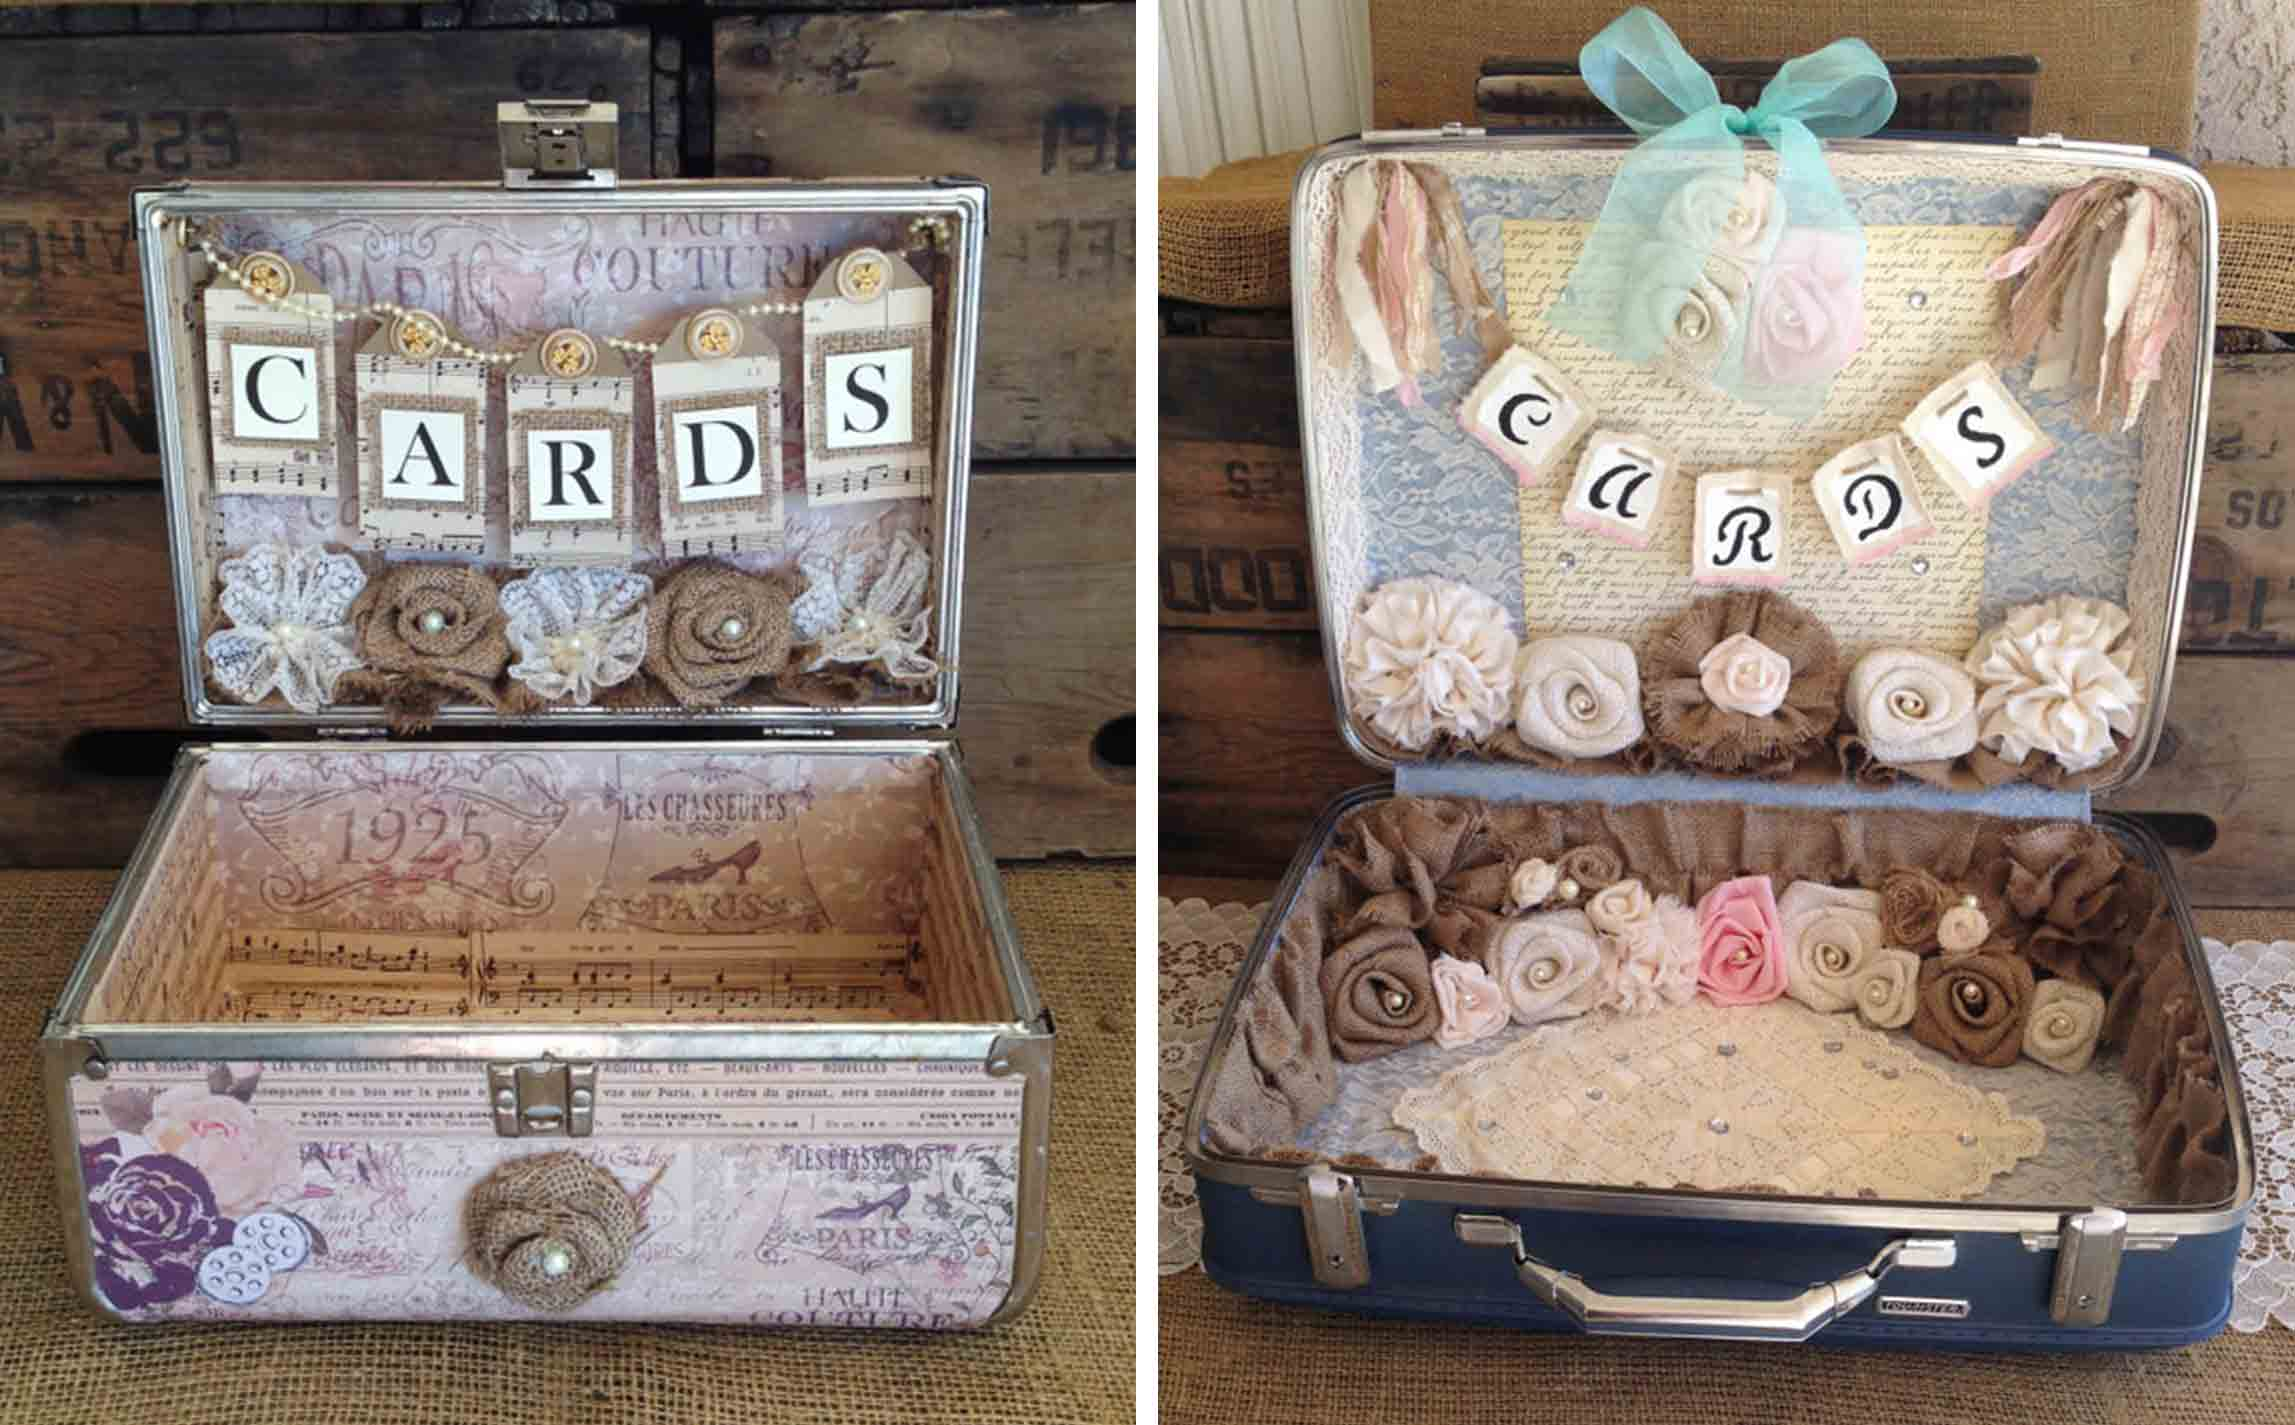 Vintage luggage to hold gift cards at wedding